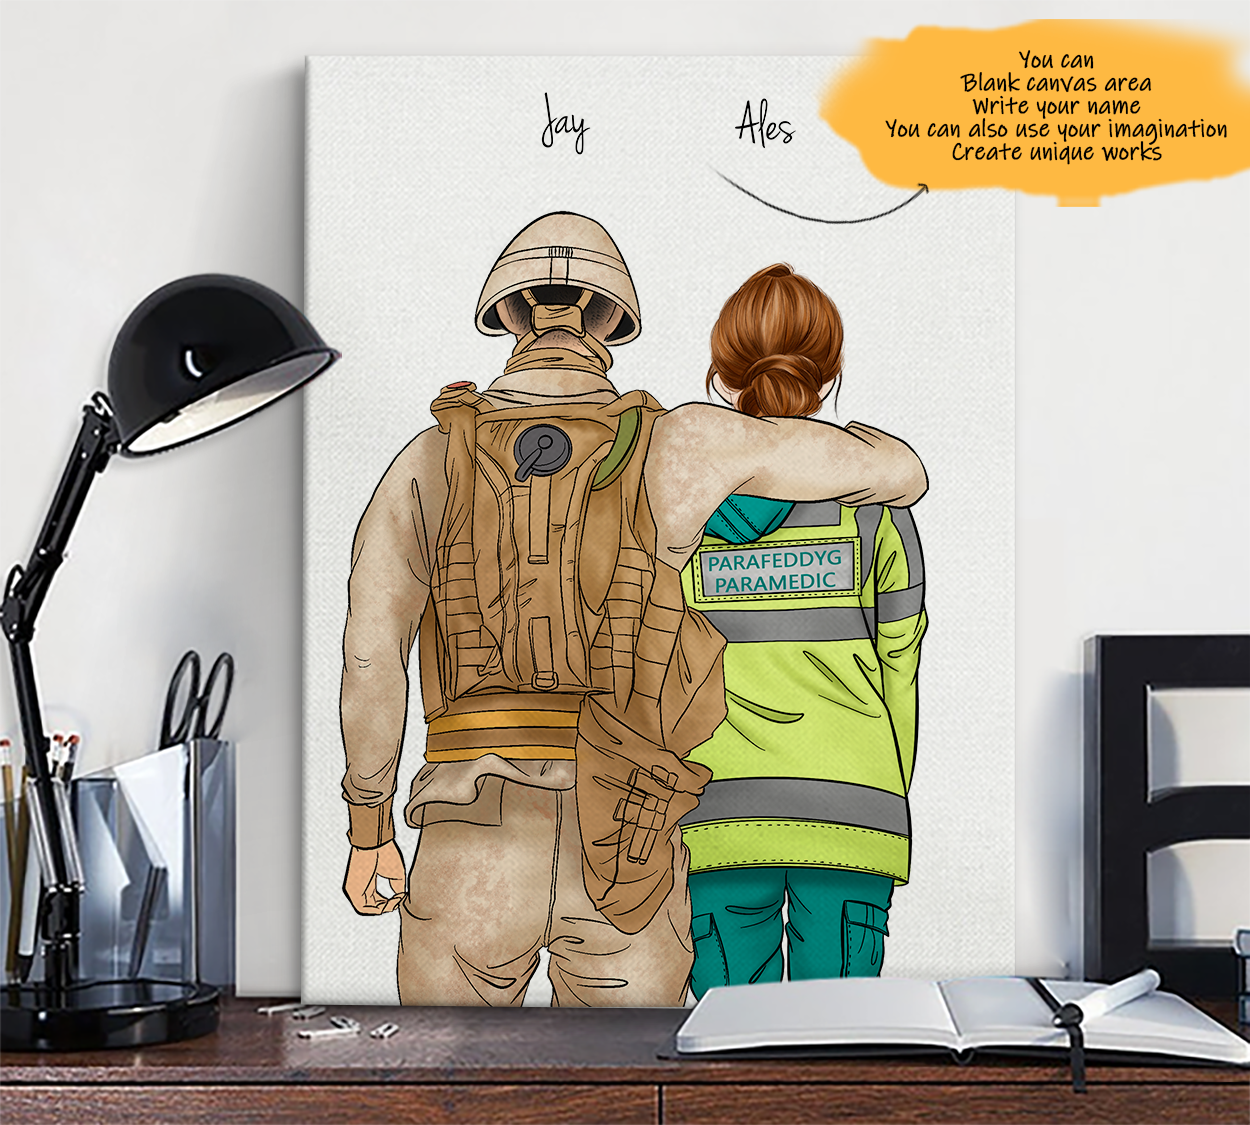 He is My Friend! Hand Draw Custom Canvas-Print Gift Soldier-Light&ParamedicUK